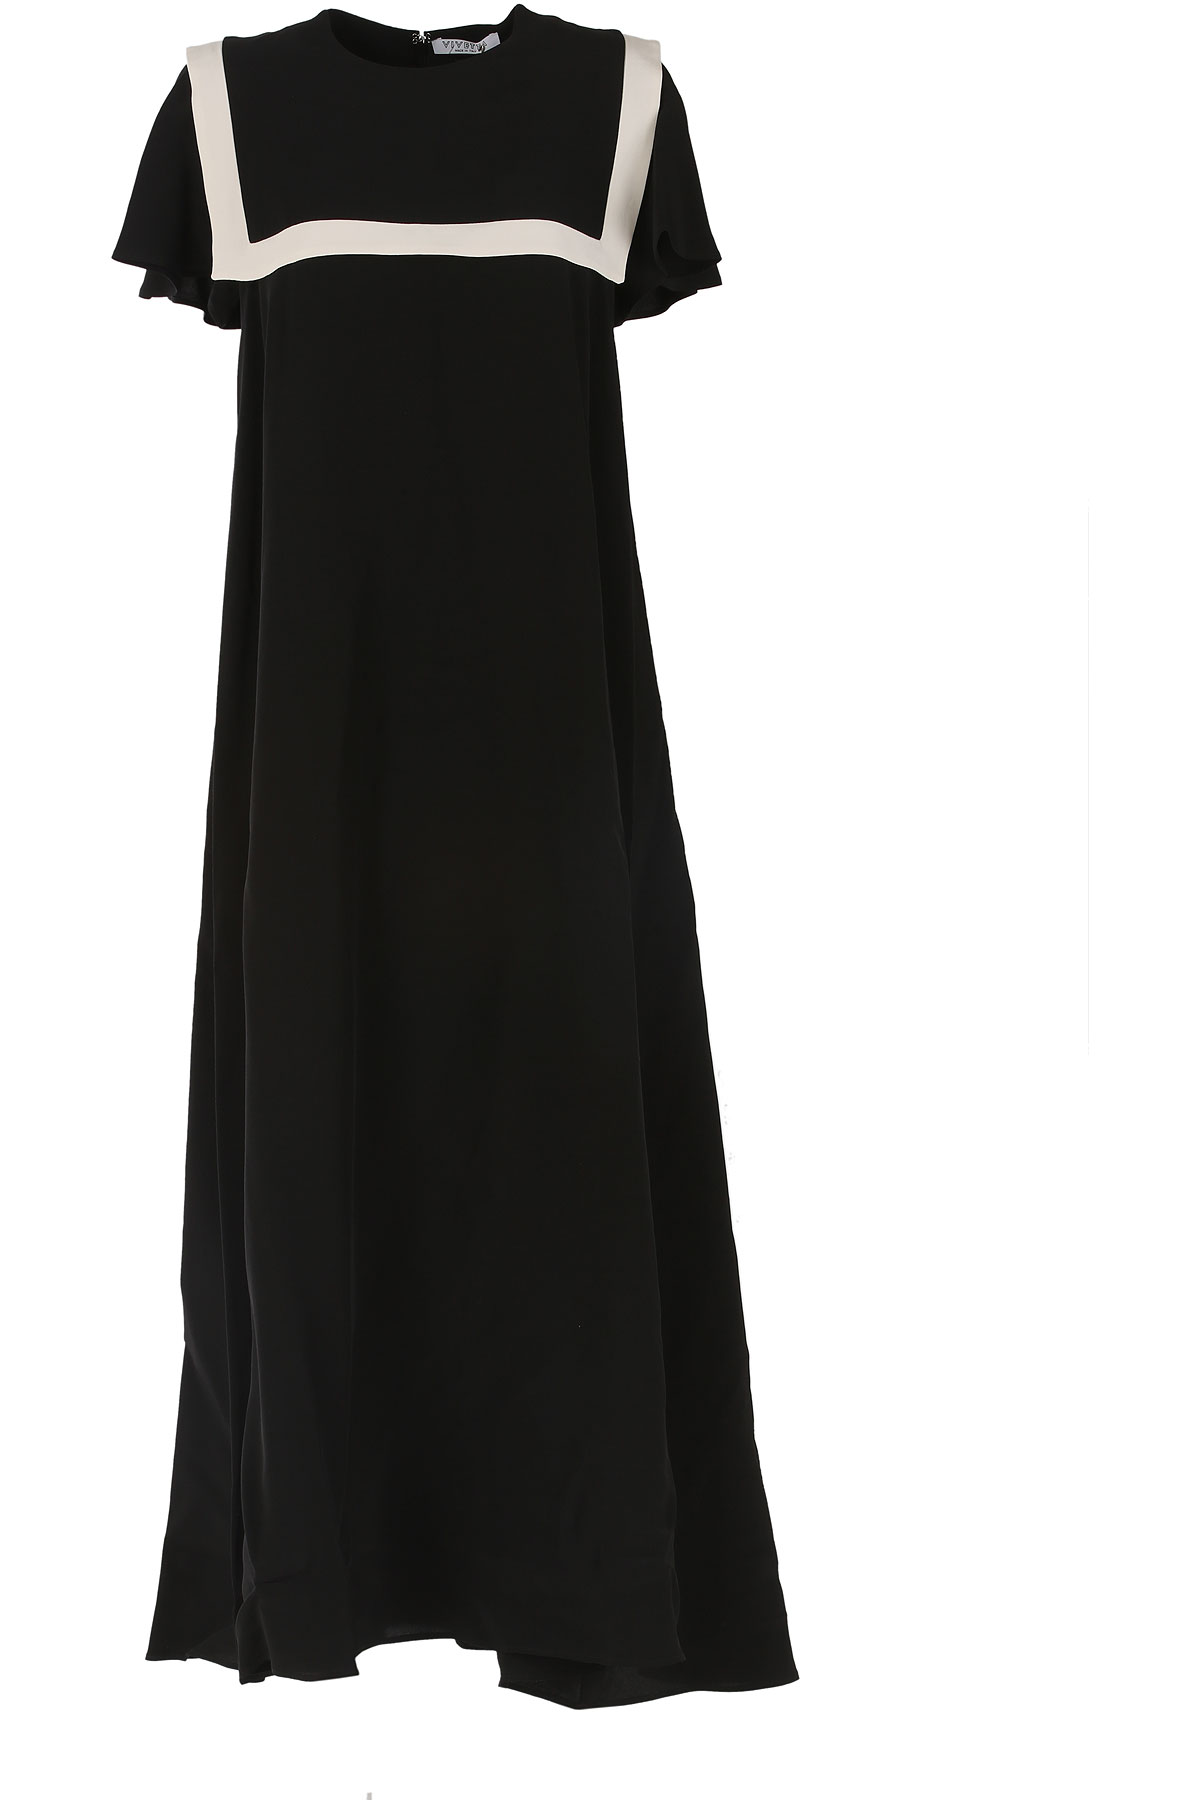 Image of Vivetta Dress for Women, Evening Cocktail Party On Sale, Black, Cotton, 2017, 4 6